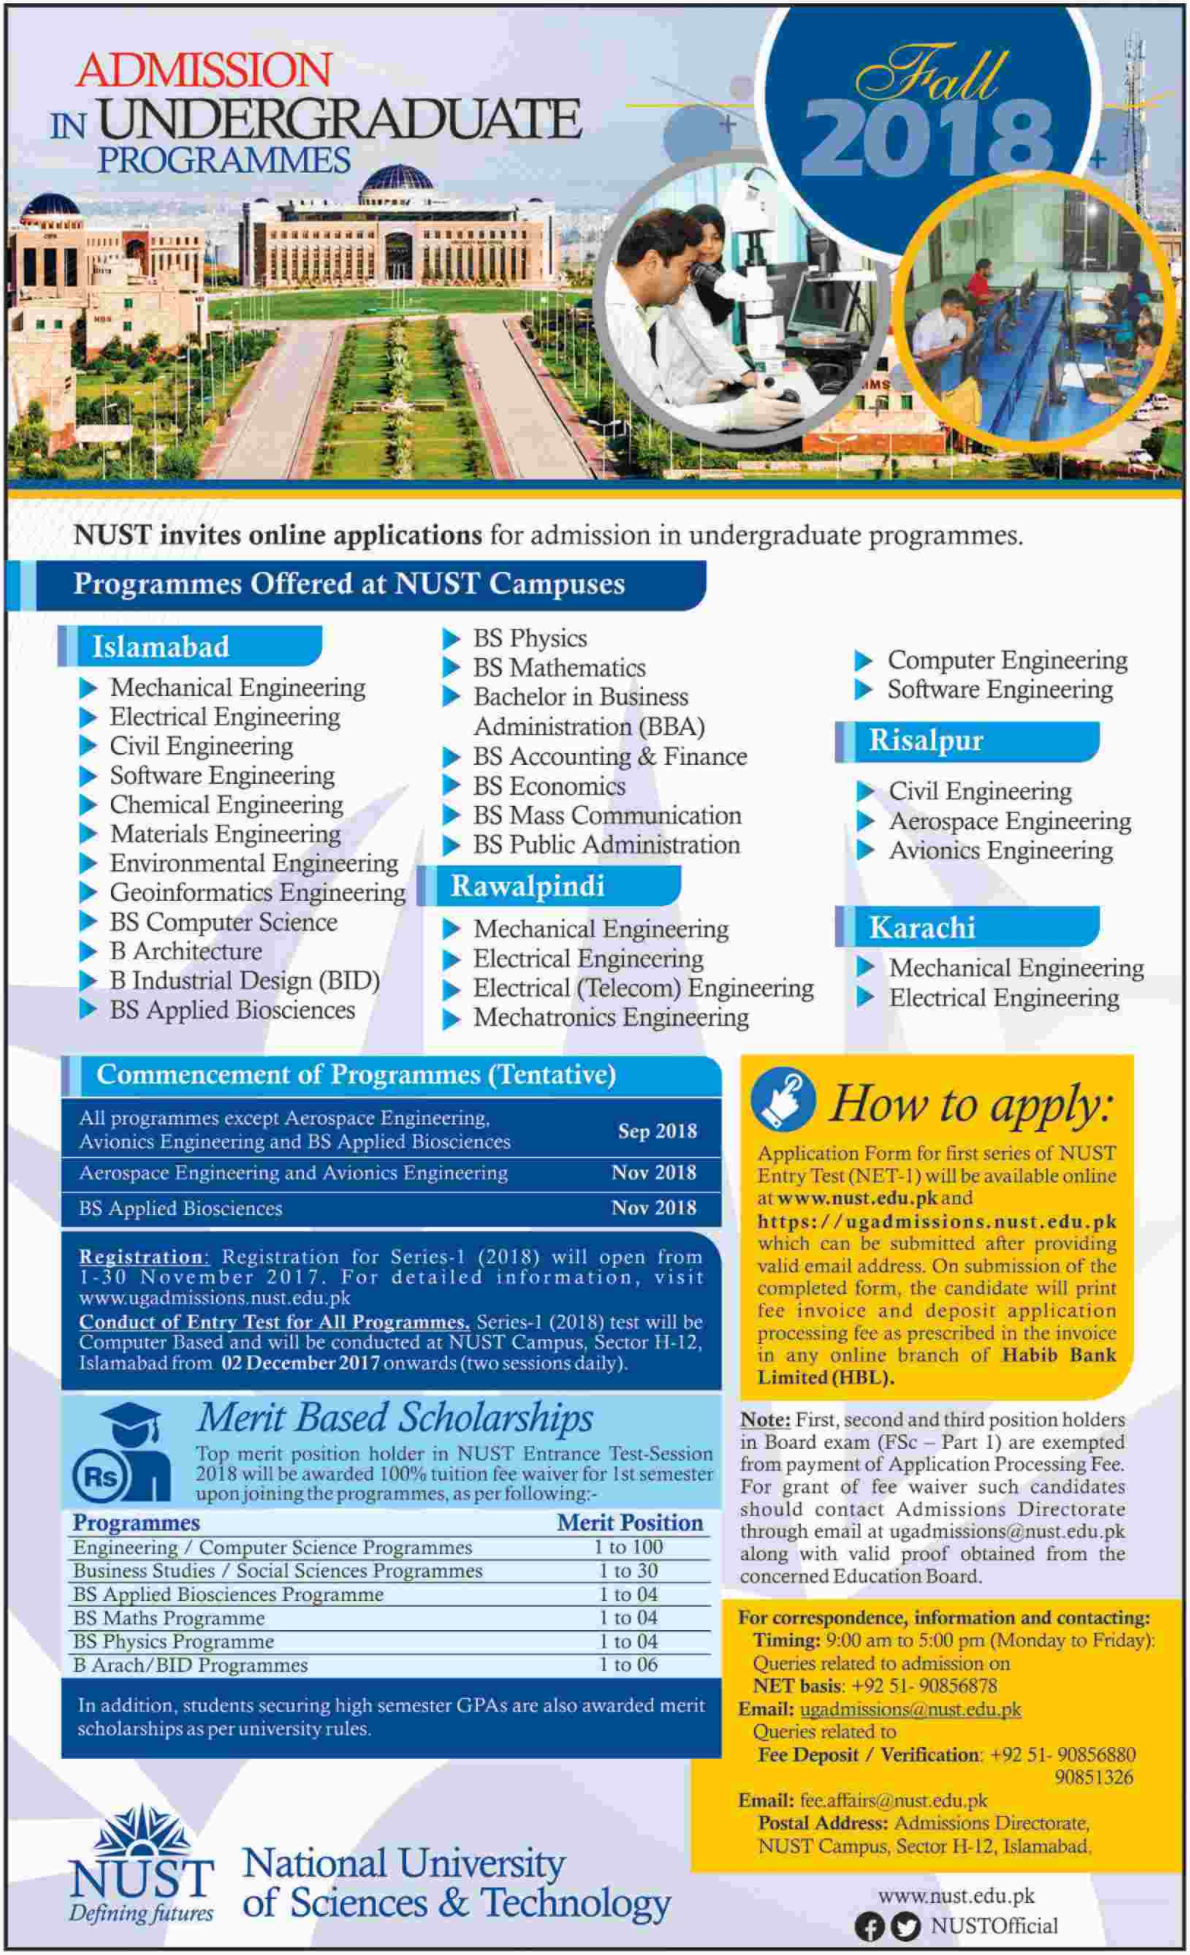 National University of Sciences and Technology (NUST